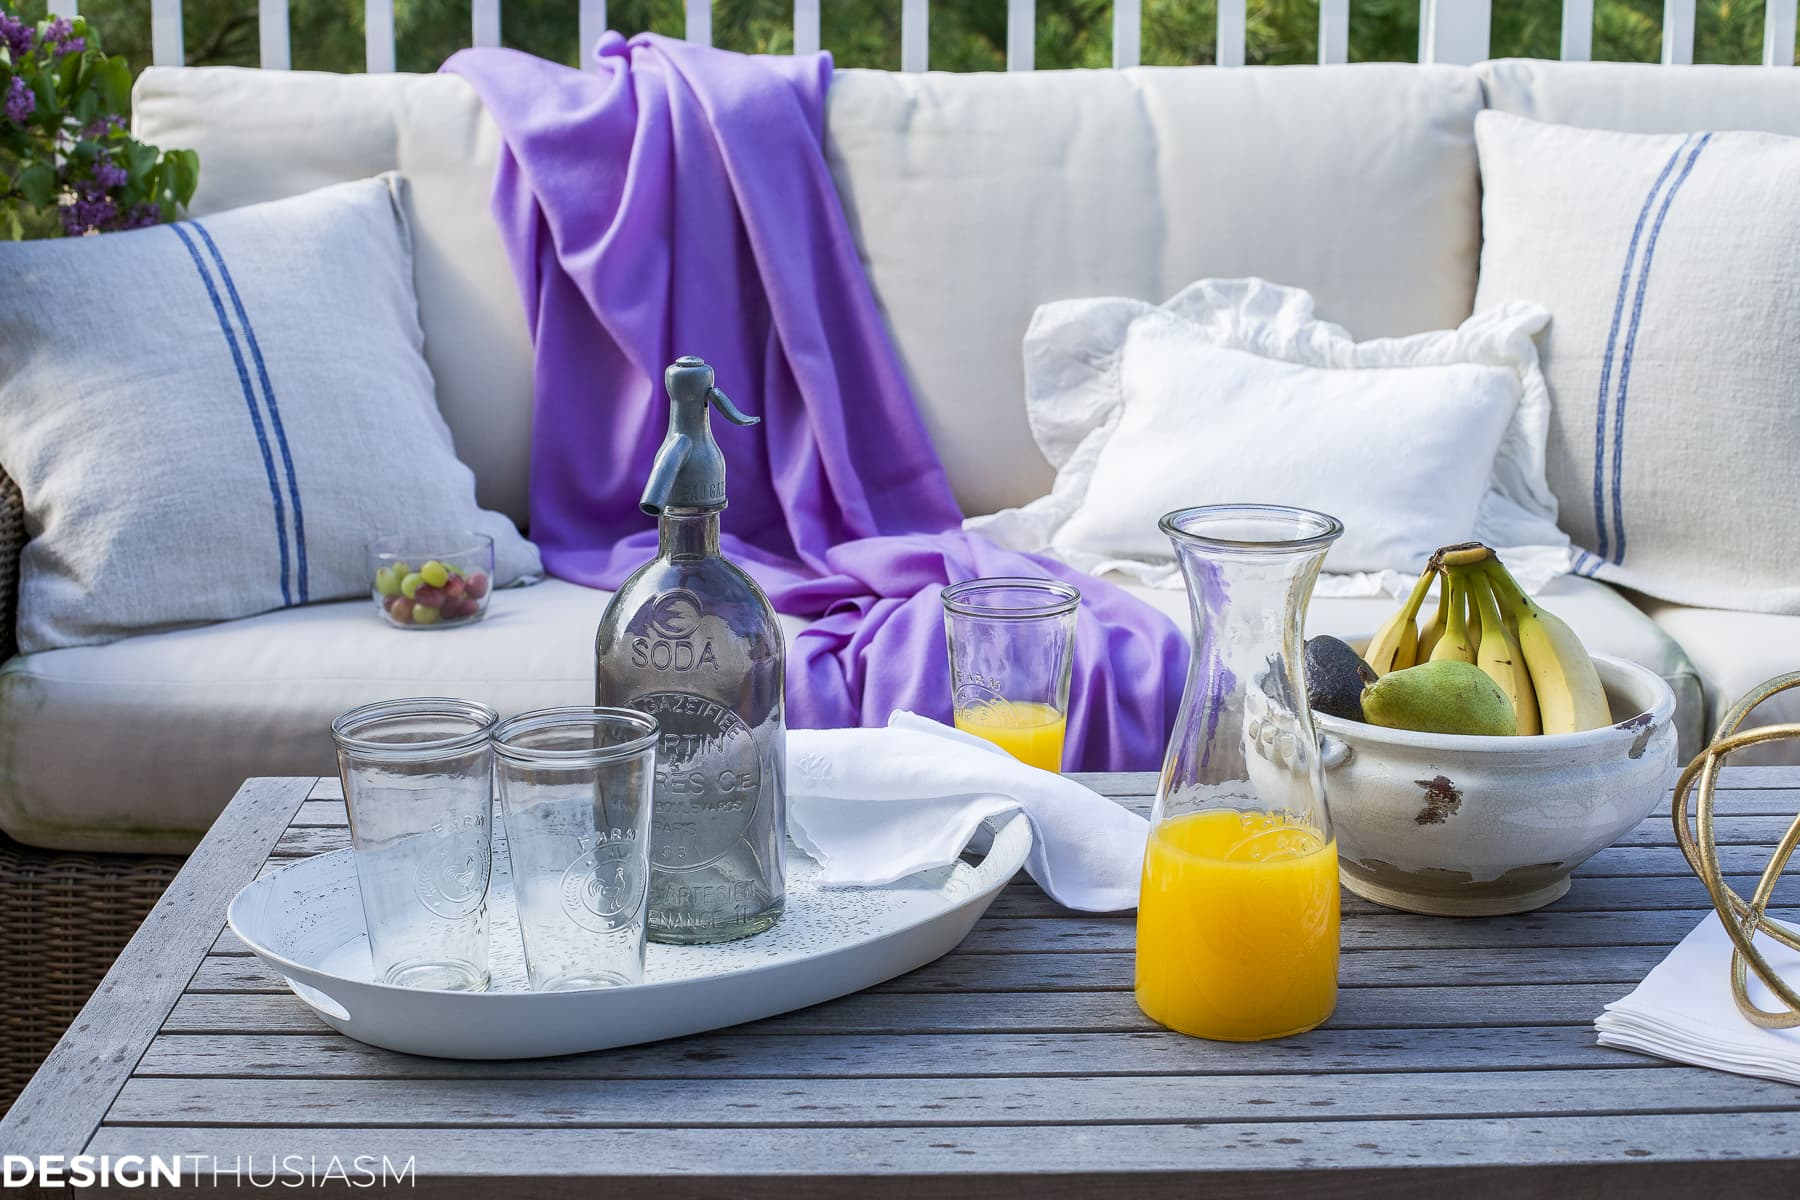 Patio Decor | Adding Summer Style With Outdoor Accessories - designthusiasm.com